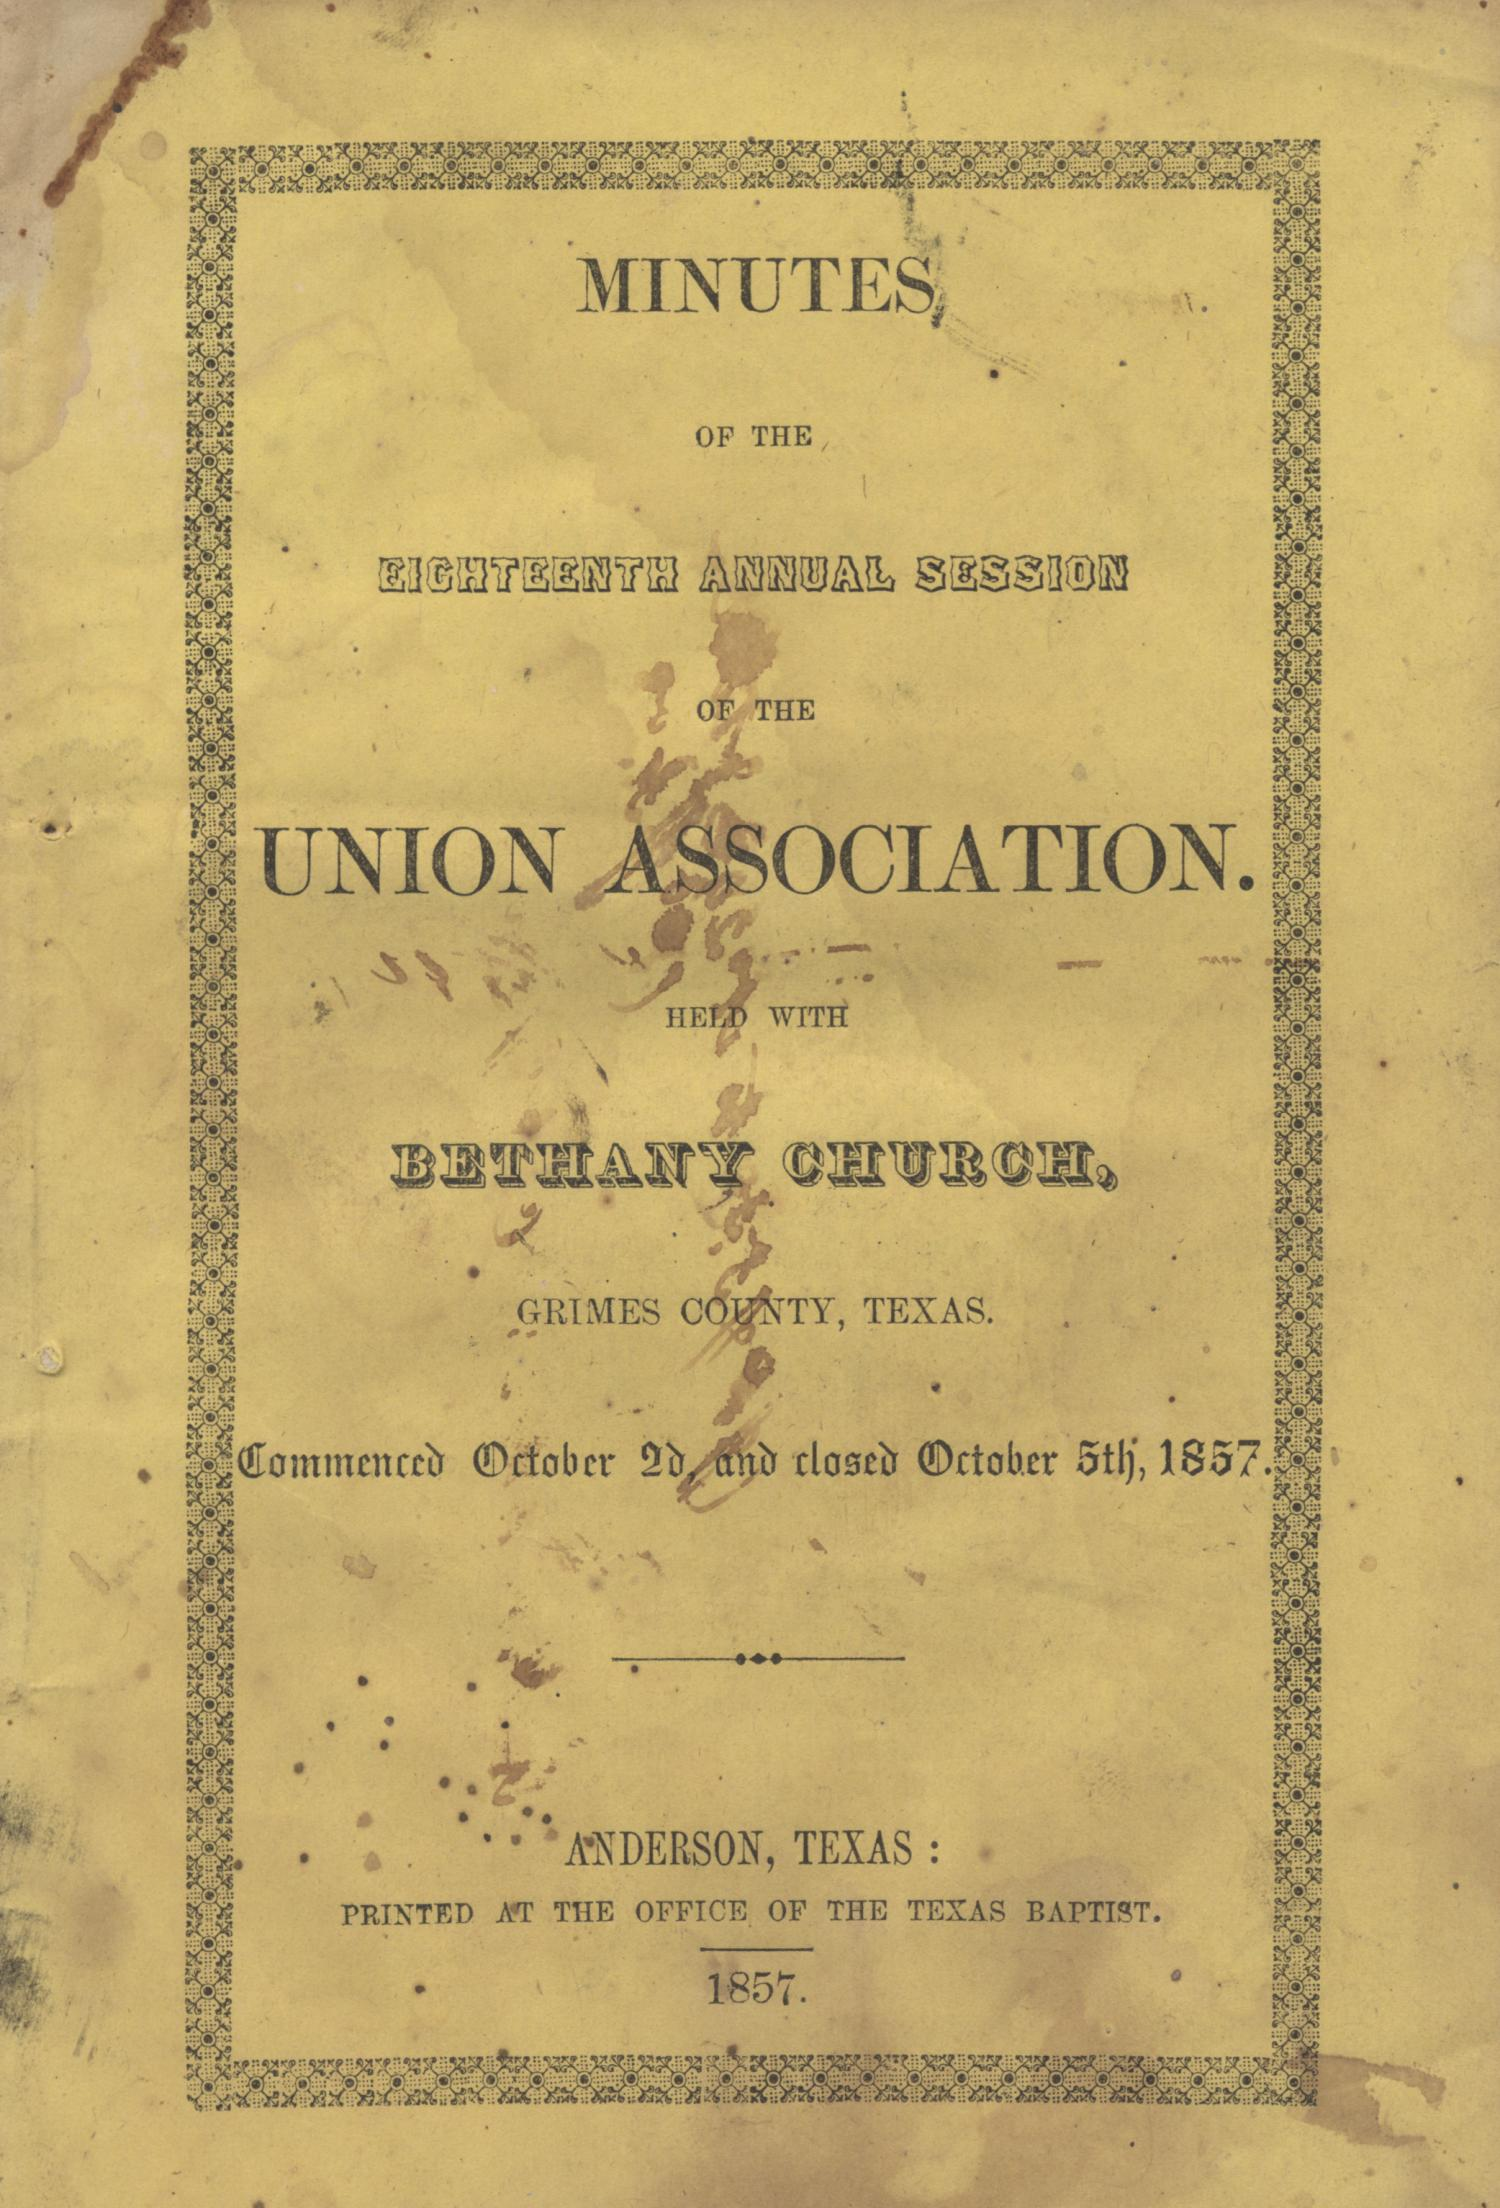 Minutes of the Eighteenth Annual Session of the Union Baptist Association, 1857                                                                                                      Front Cover